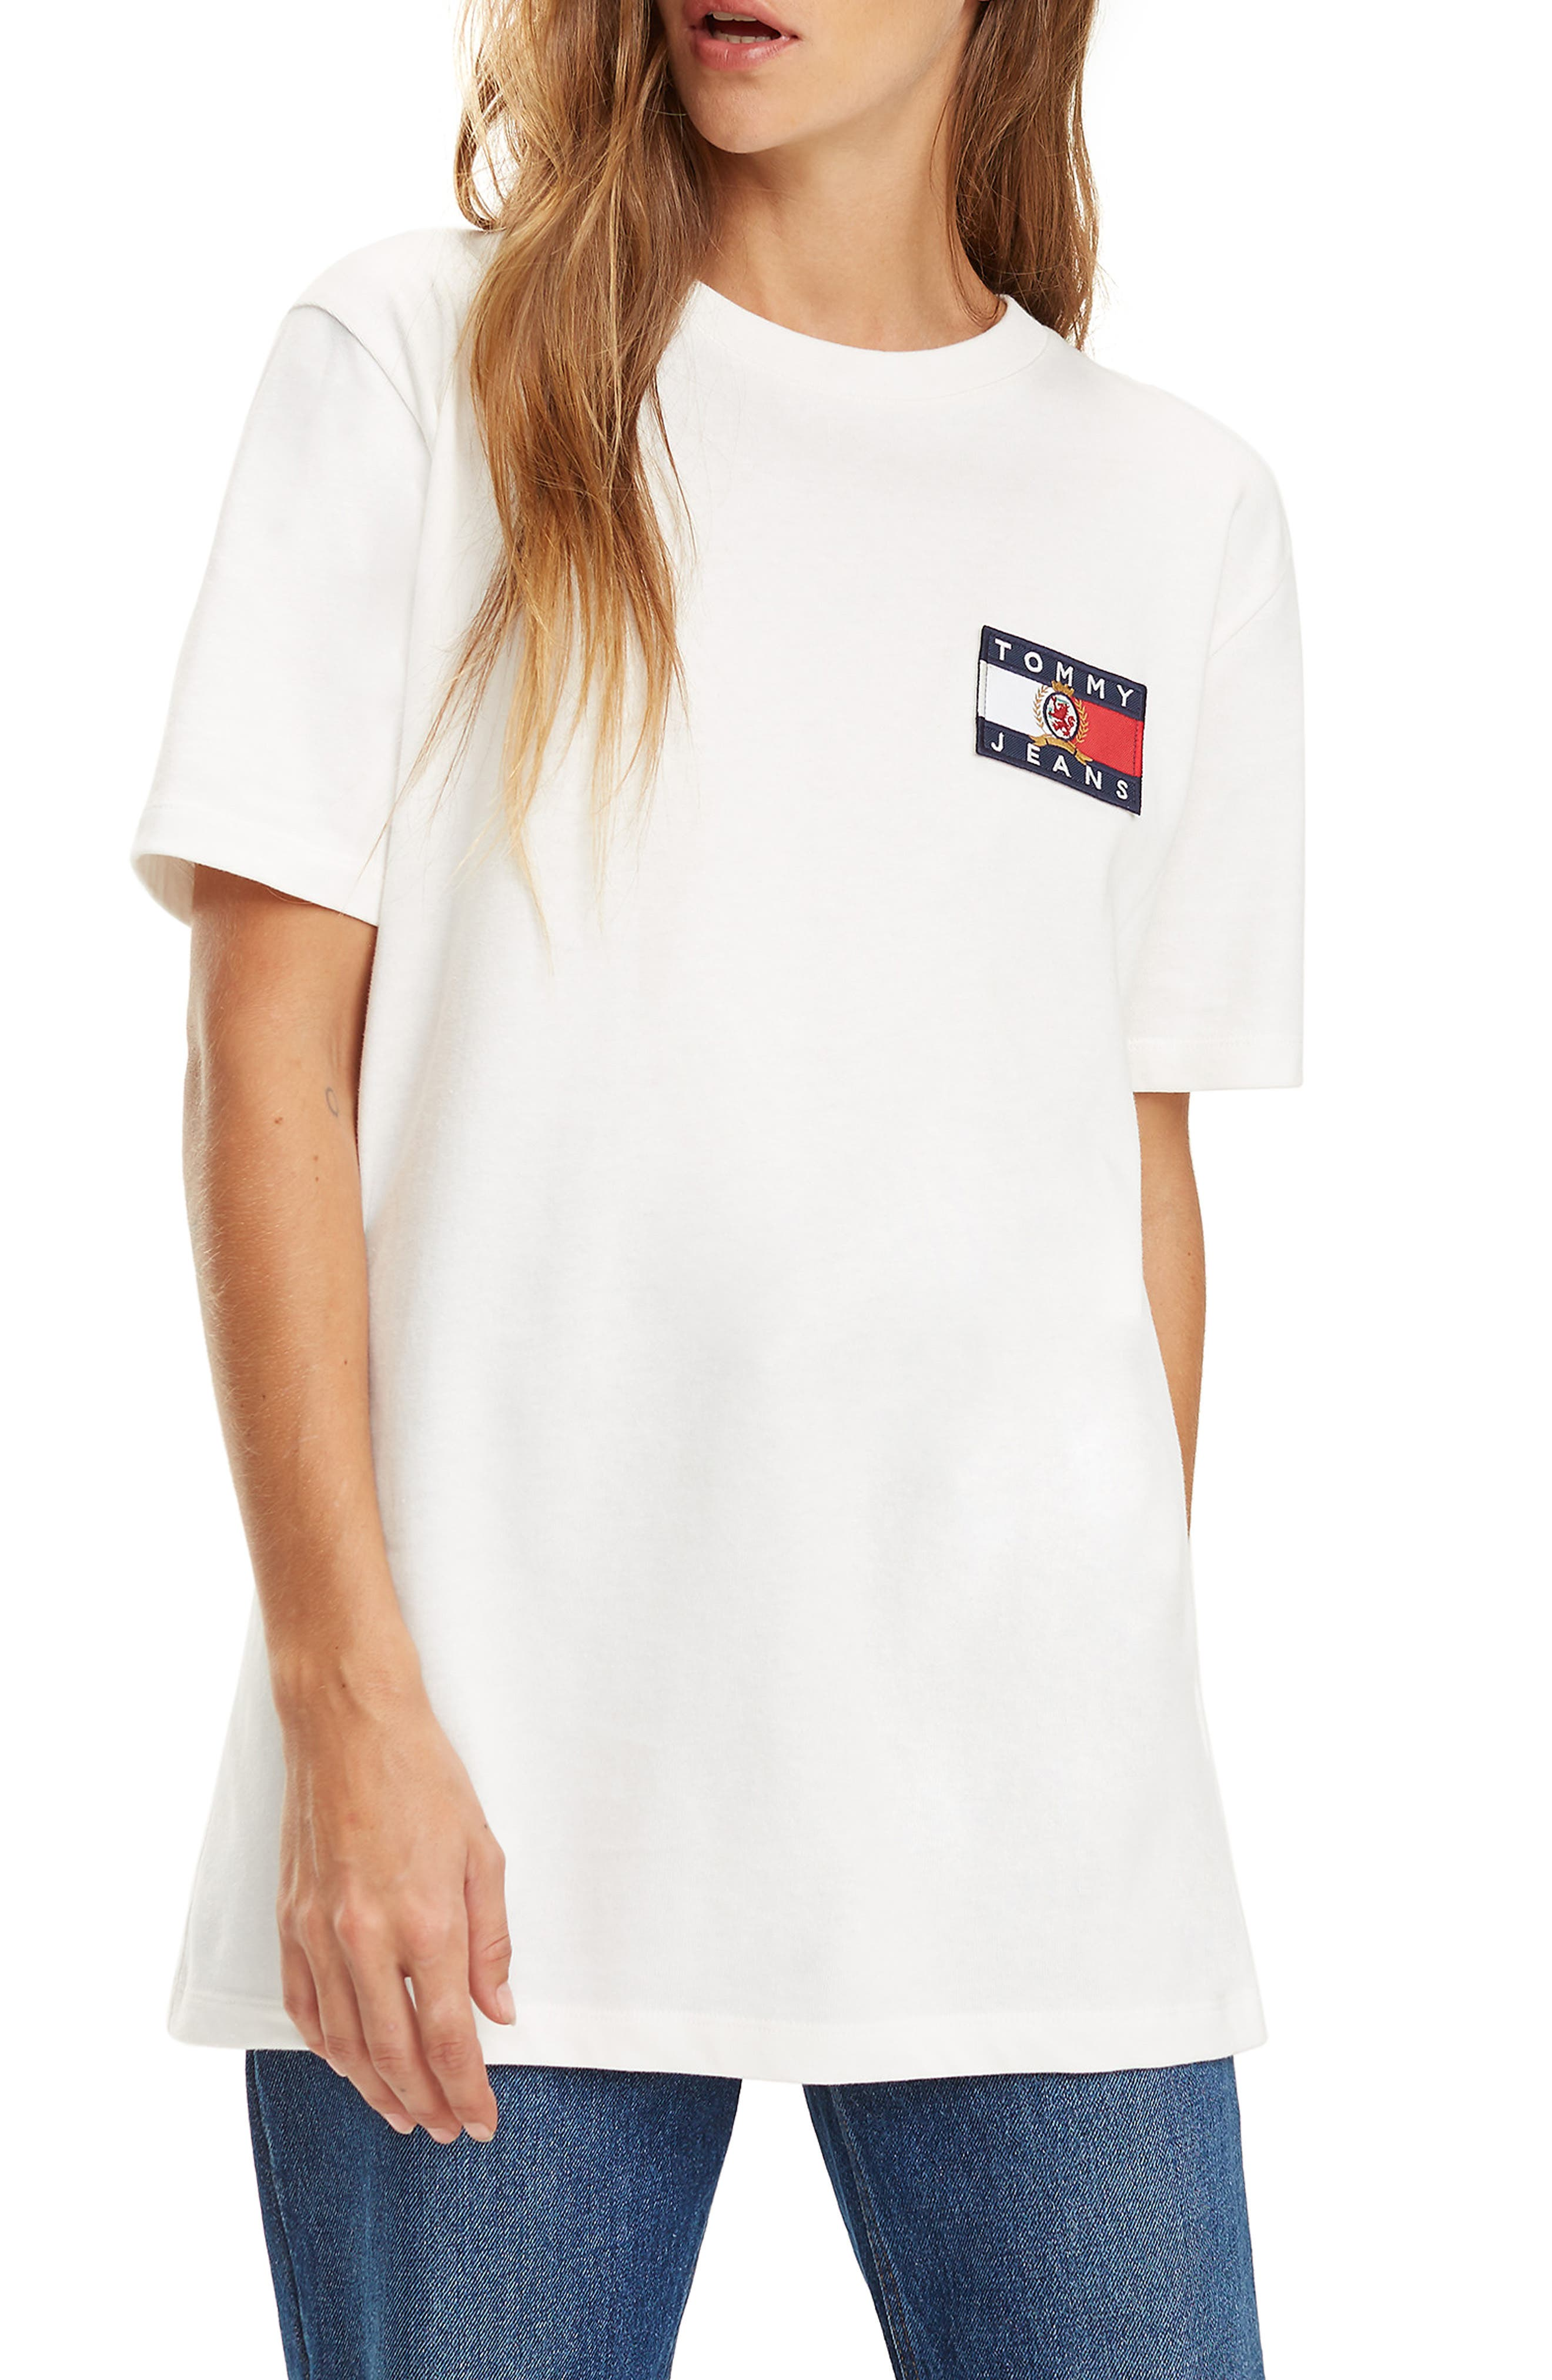 TOMMY JEANS Crest Capsule Flag Tee, Main, color, 100